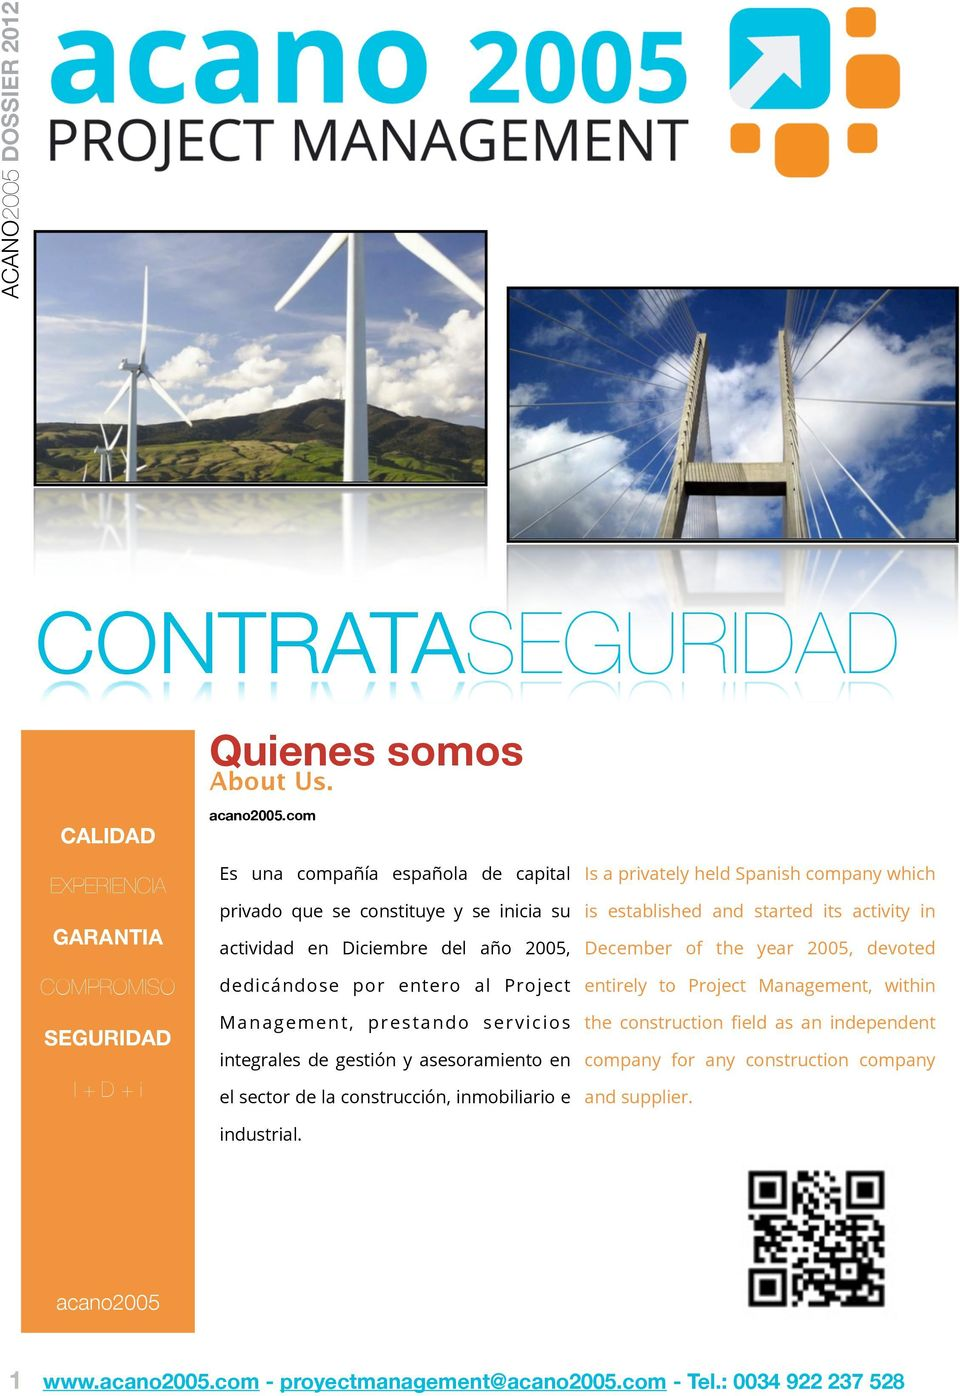 SEGURIDAD I+D+i actividad en Diciembre del año 2005, December of the year 2005, devoted dedicándose por entero al Project entirely to Project Management, within M a n a g e m e n t, p r e